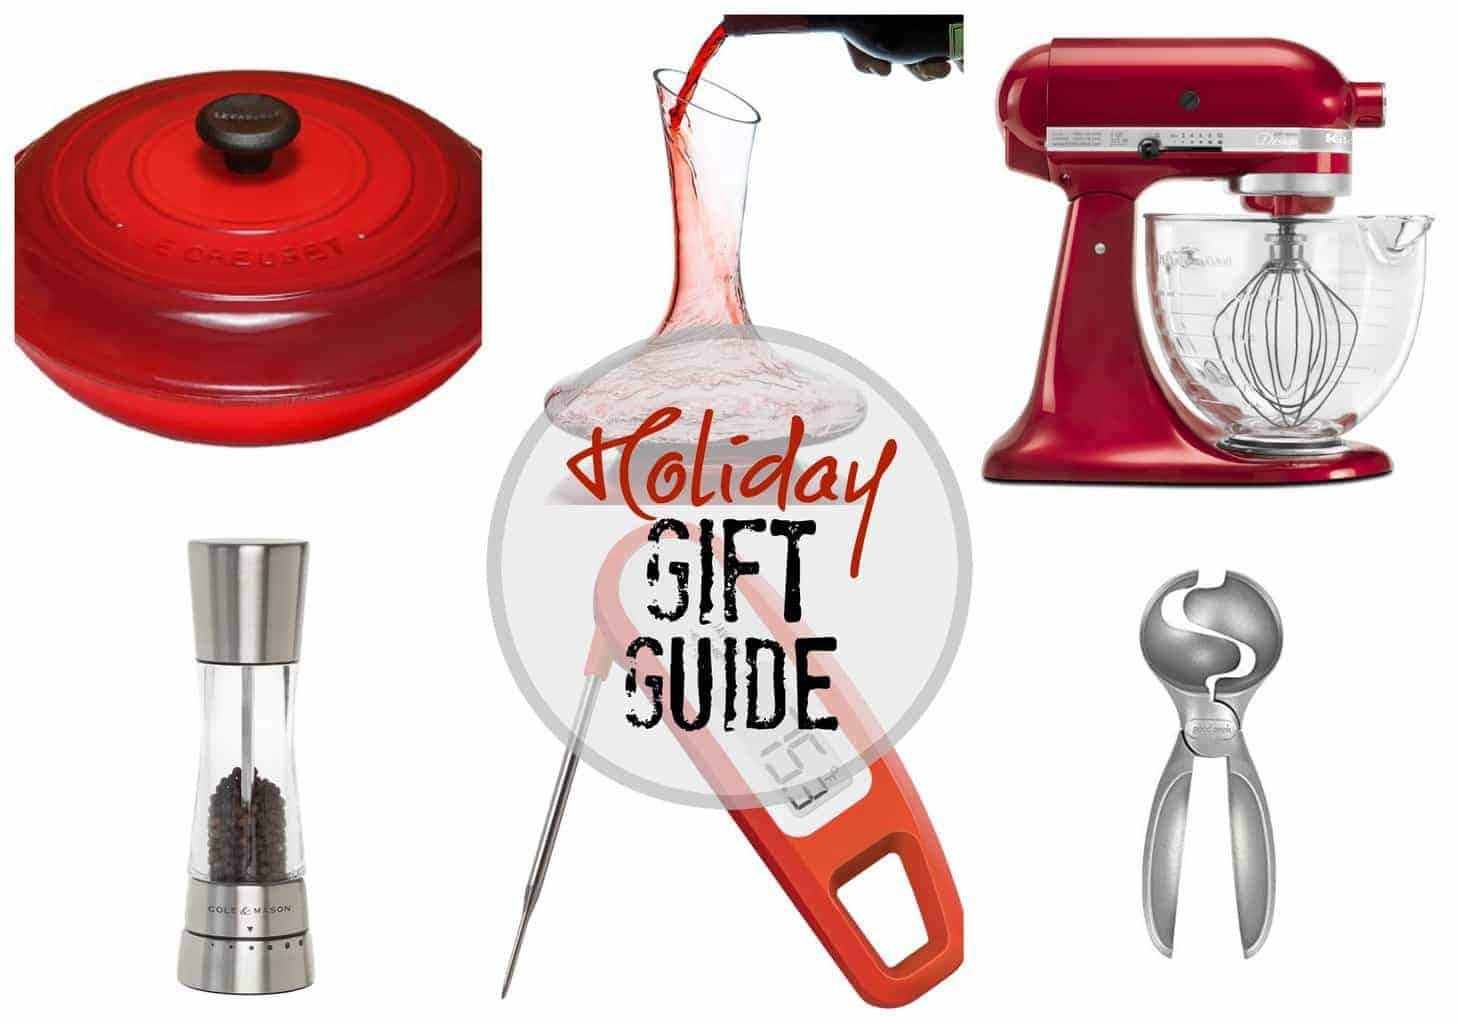 2017 Holiday Gift Guide | Gift inspiration for the foodies in your life